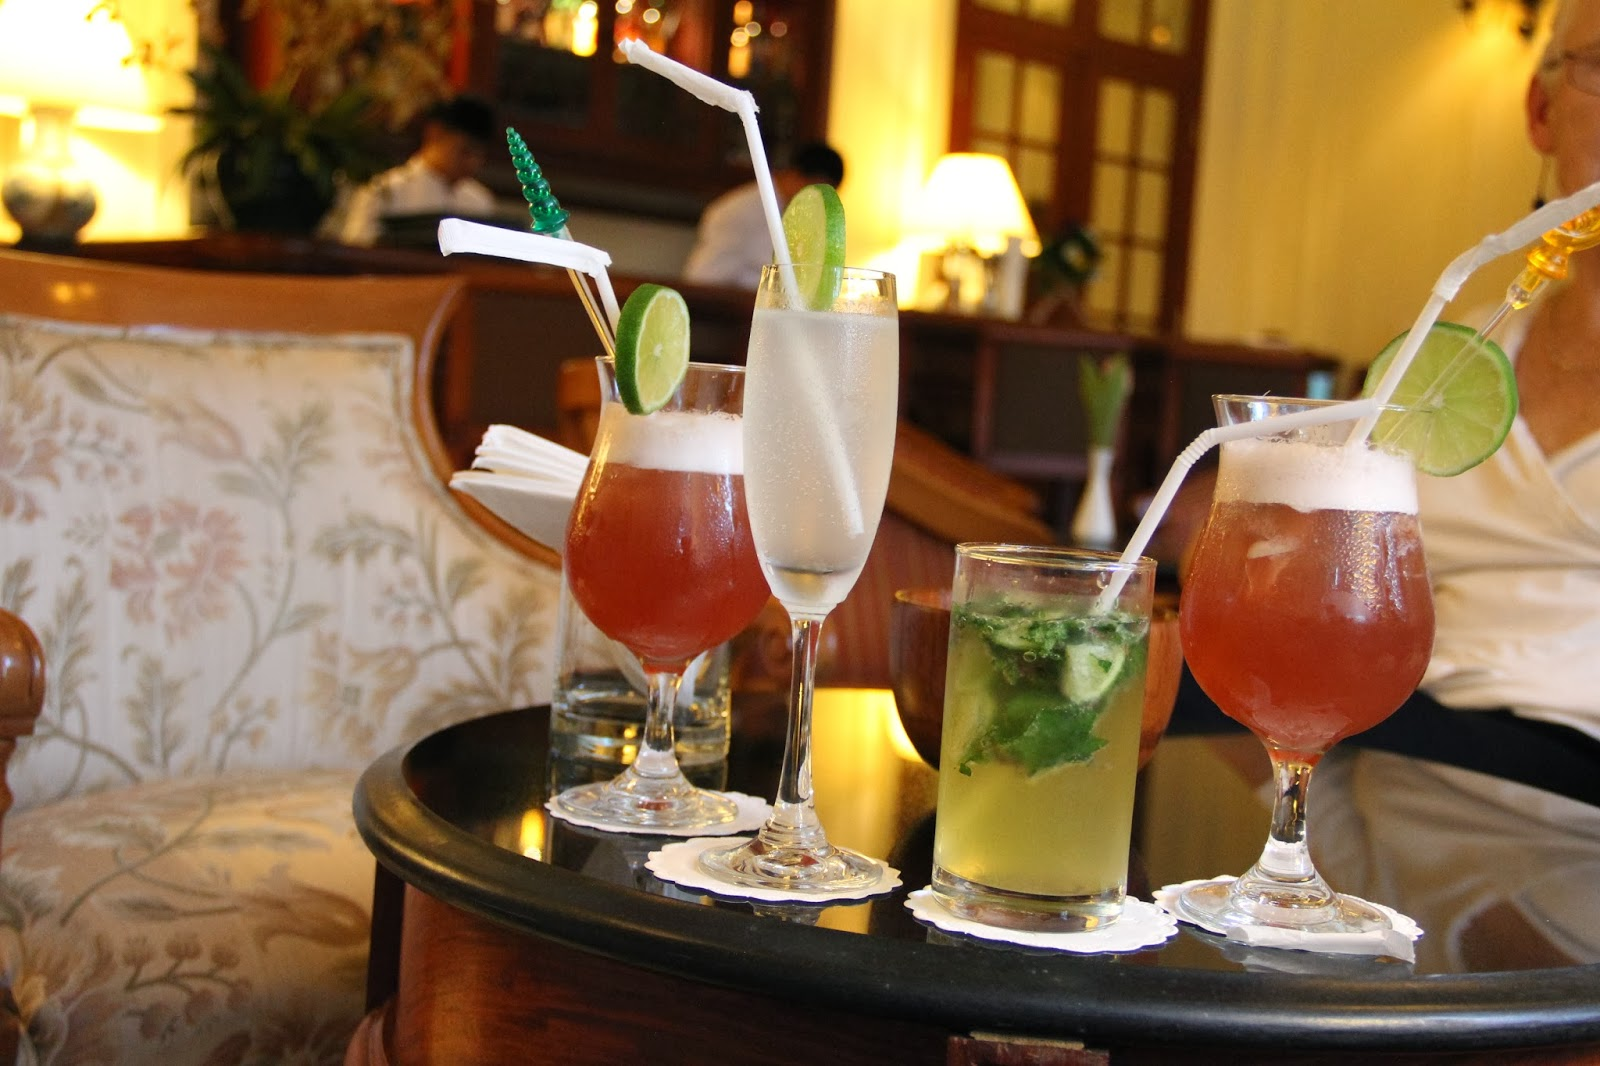 Singapore Slings and Mojito at La Belle Epoque bar at the Stteha Palace Hotel in Vientiane, Laos